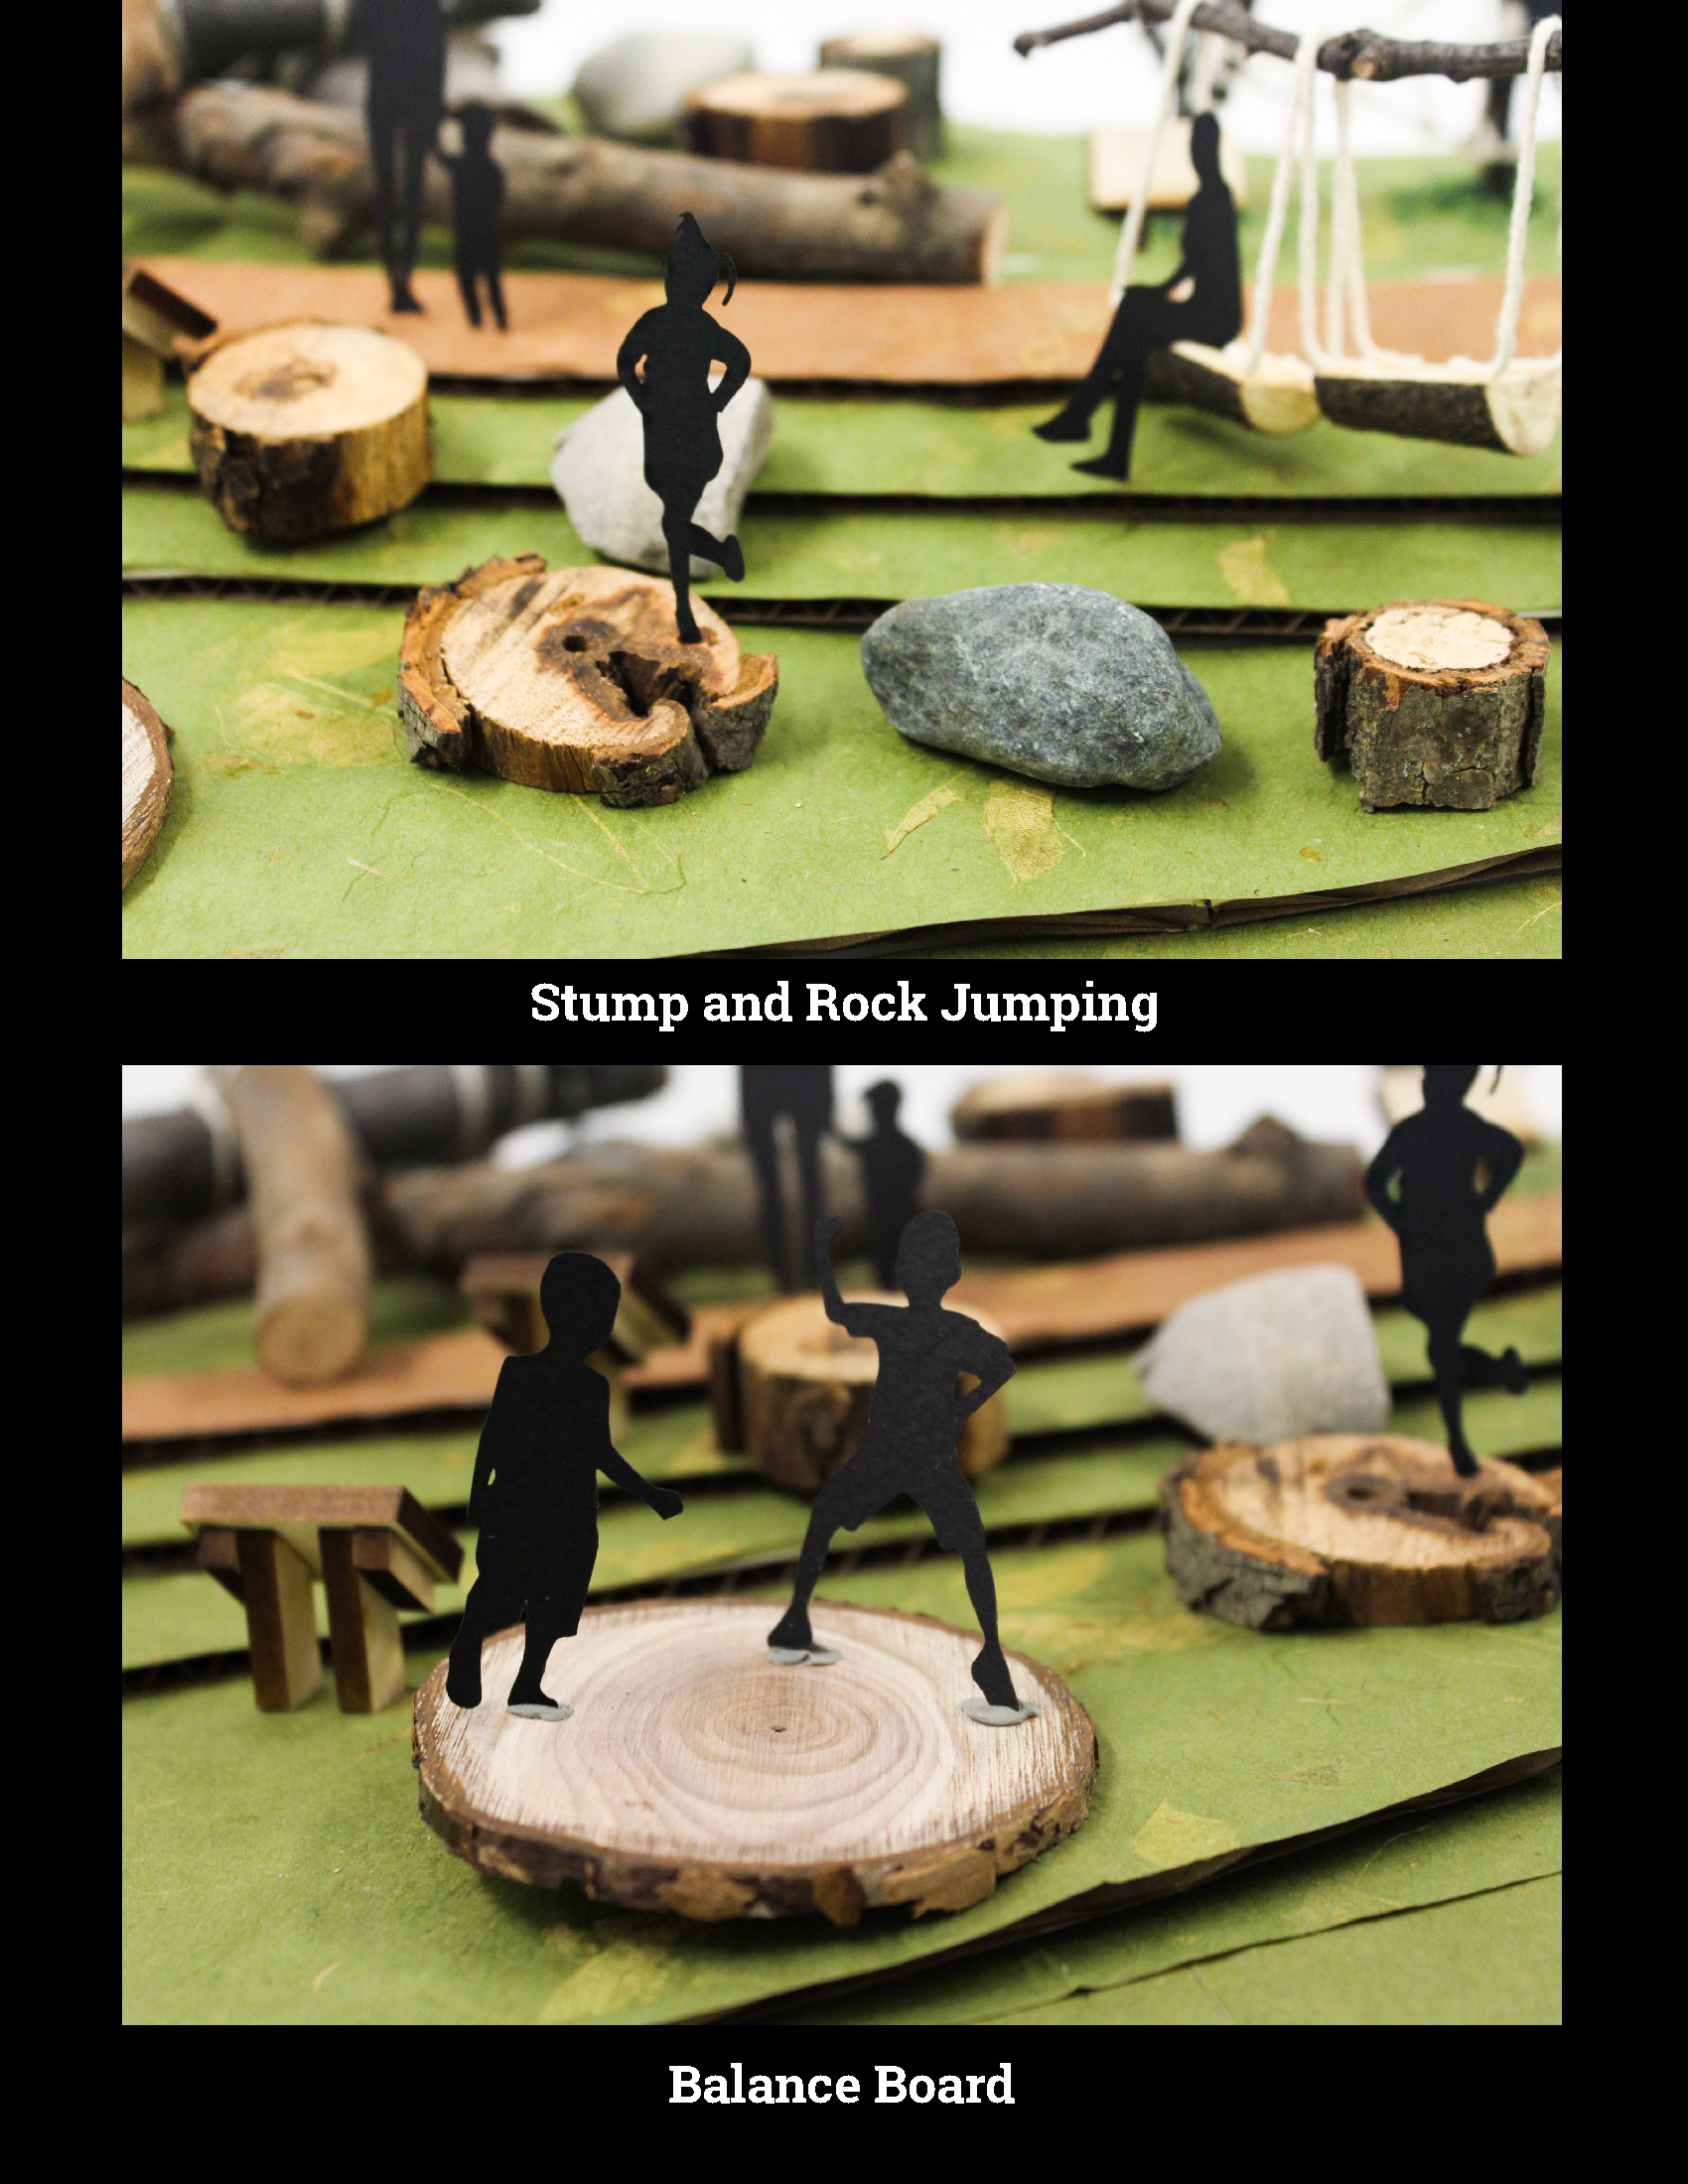 Stump/Rock Jumping and Balance Board